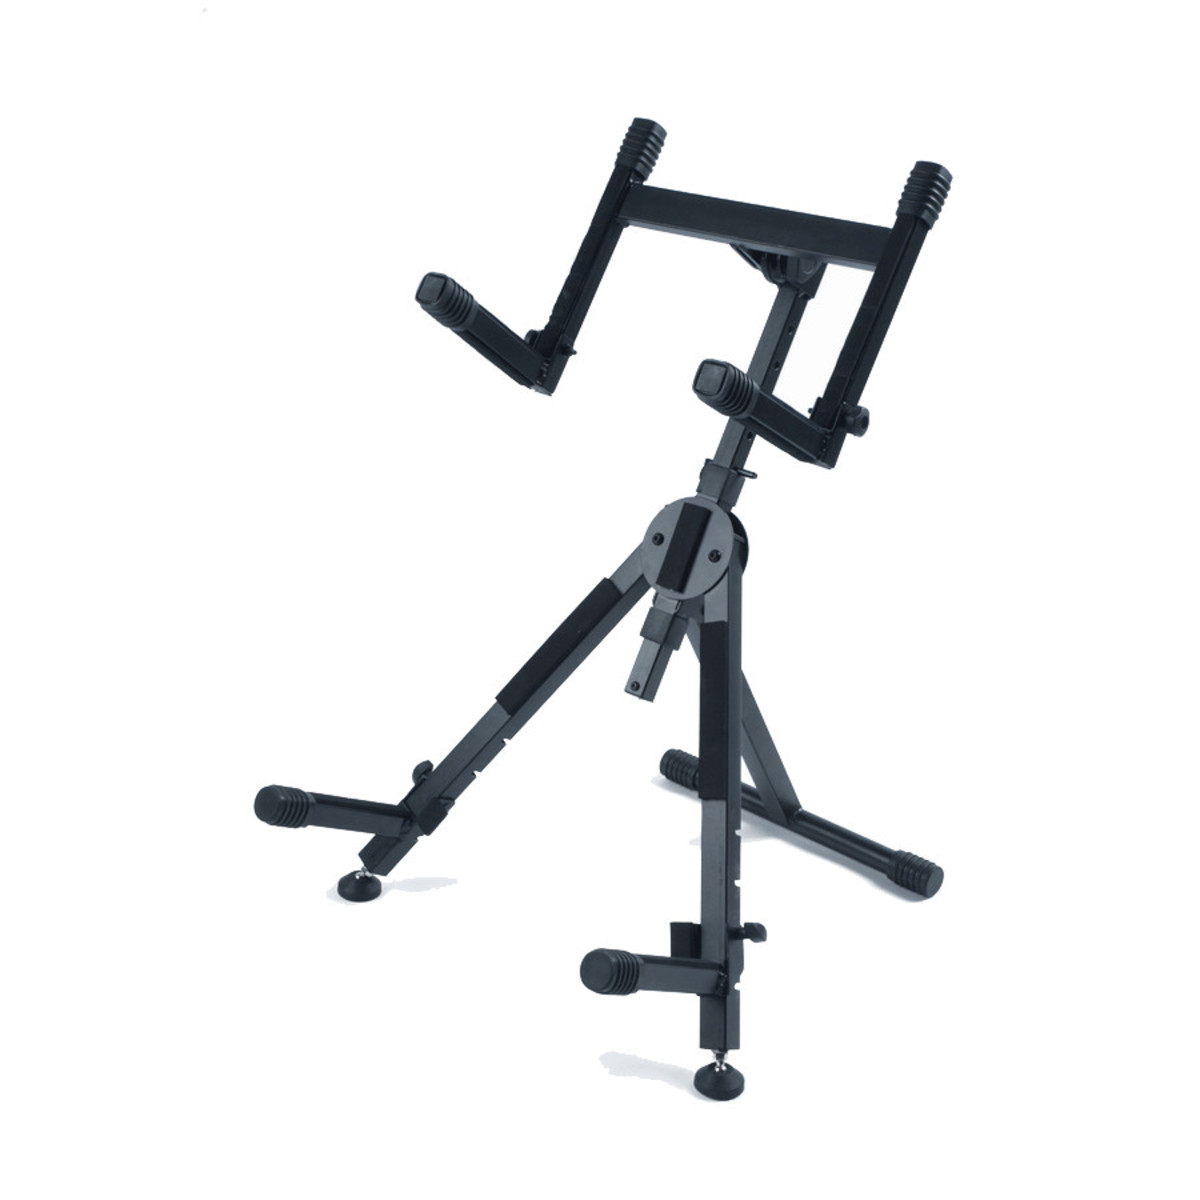 Telescoping Support Arm : Quiklok heavy duty adjustable amp stand with dual support